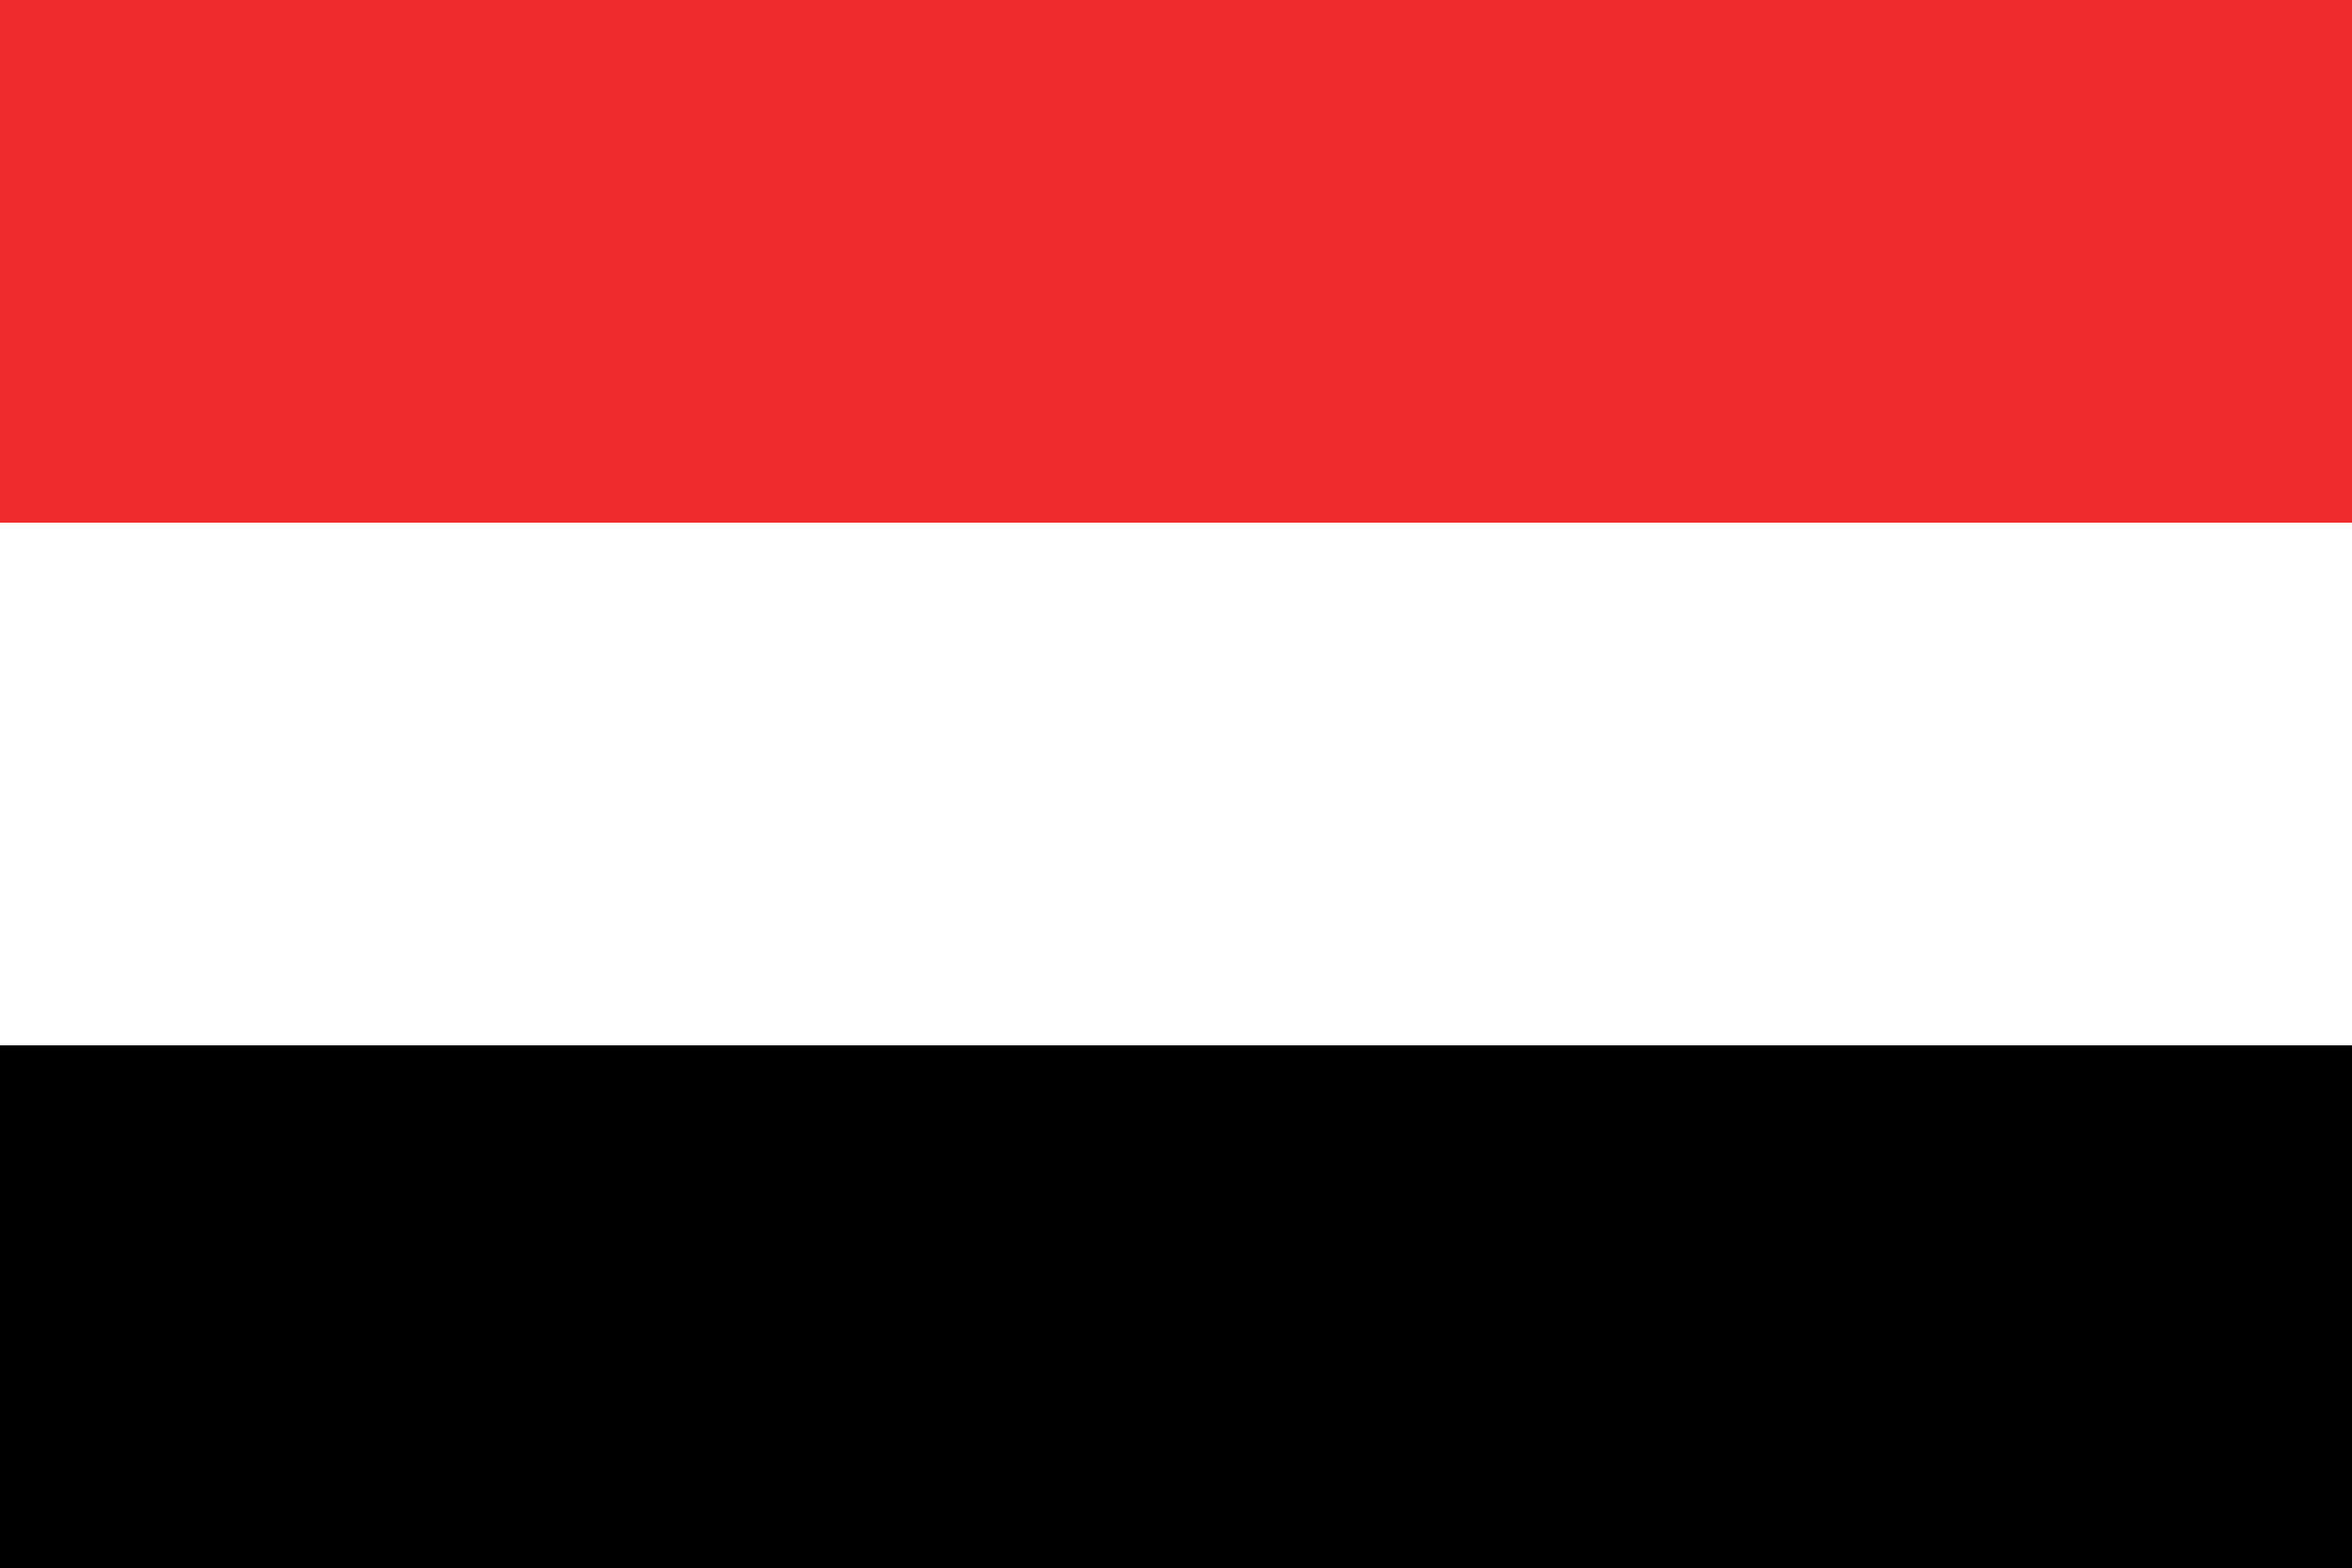 Yemen flag | World Wide Flags | Pinterest | Flags and Yemen flag